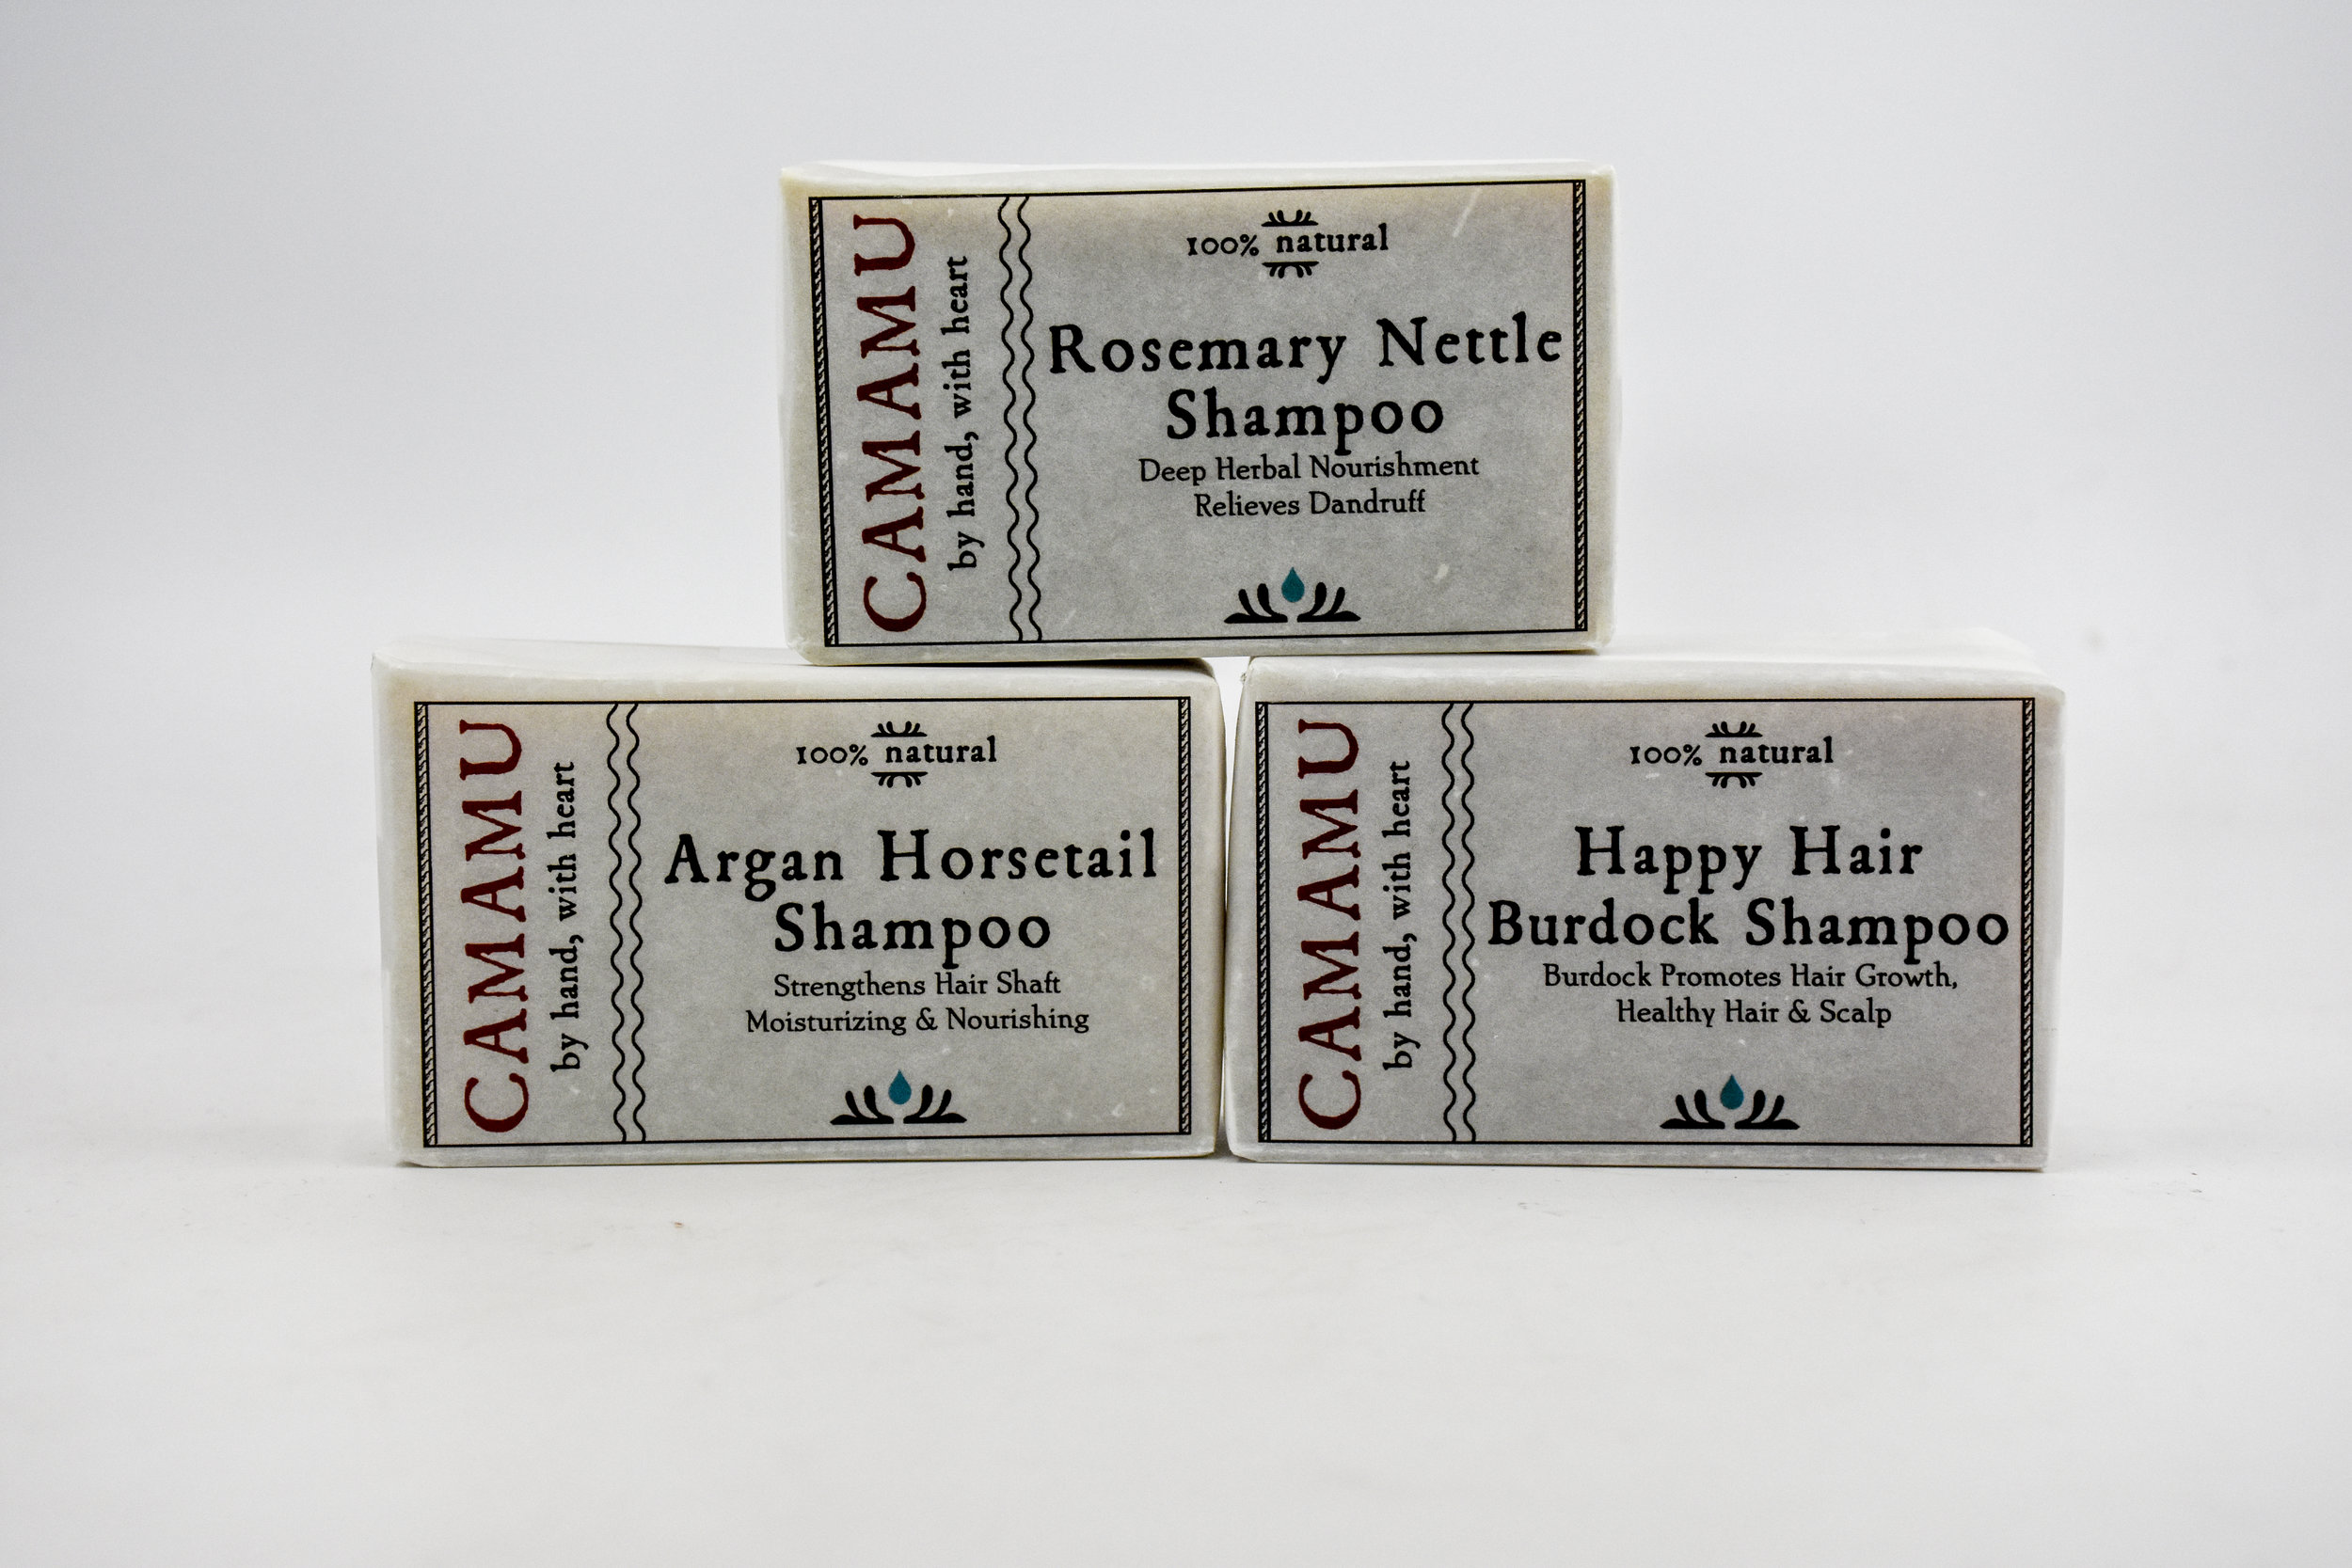 We have shampoo bars available at the Co-op!